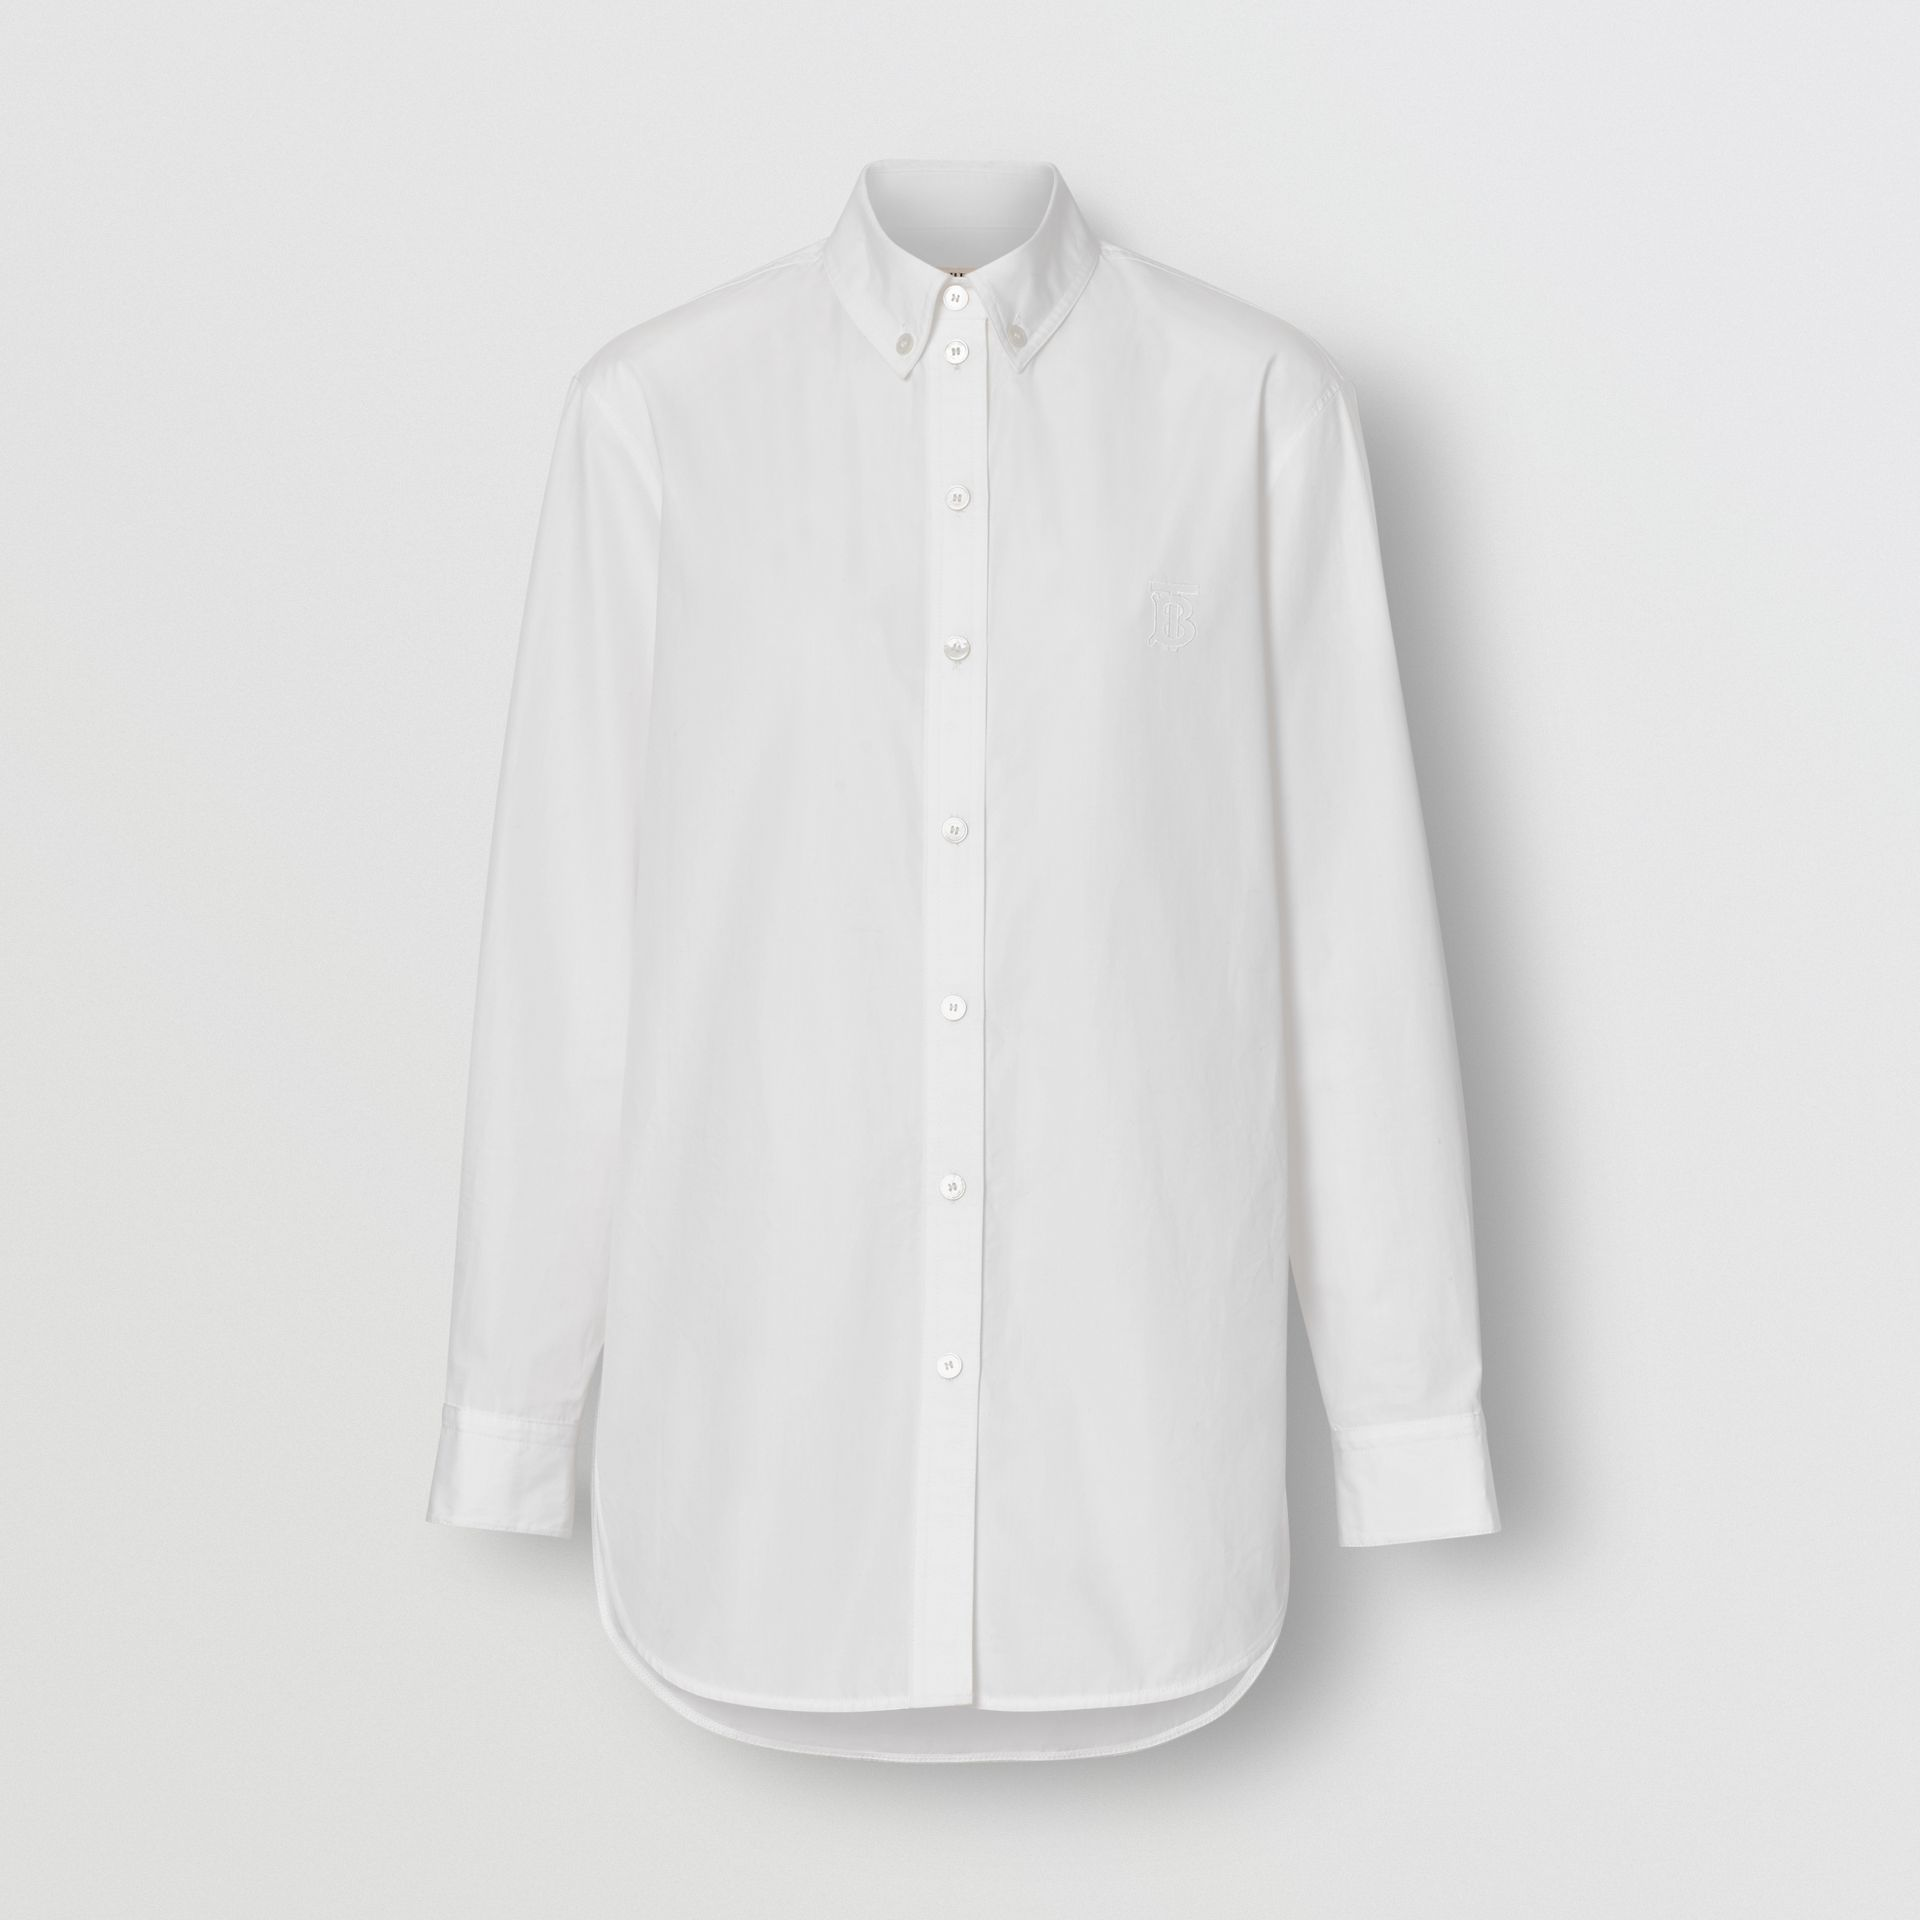 Button-down Collar Monogram Motif Cotton Shirt in White - Women | Burberry United Kingdom - gallery image 3